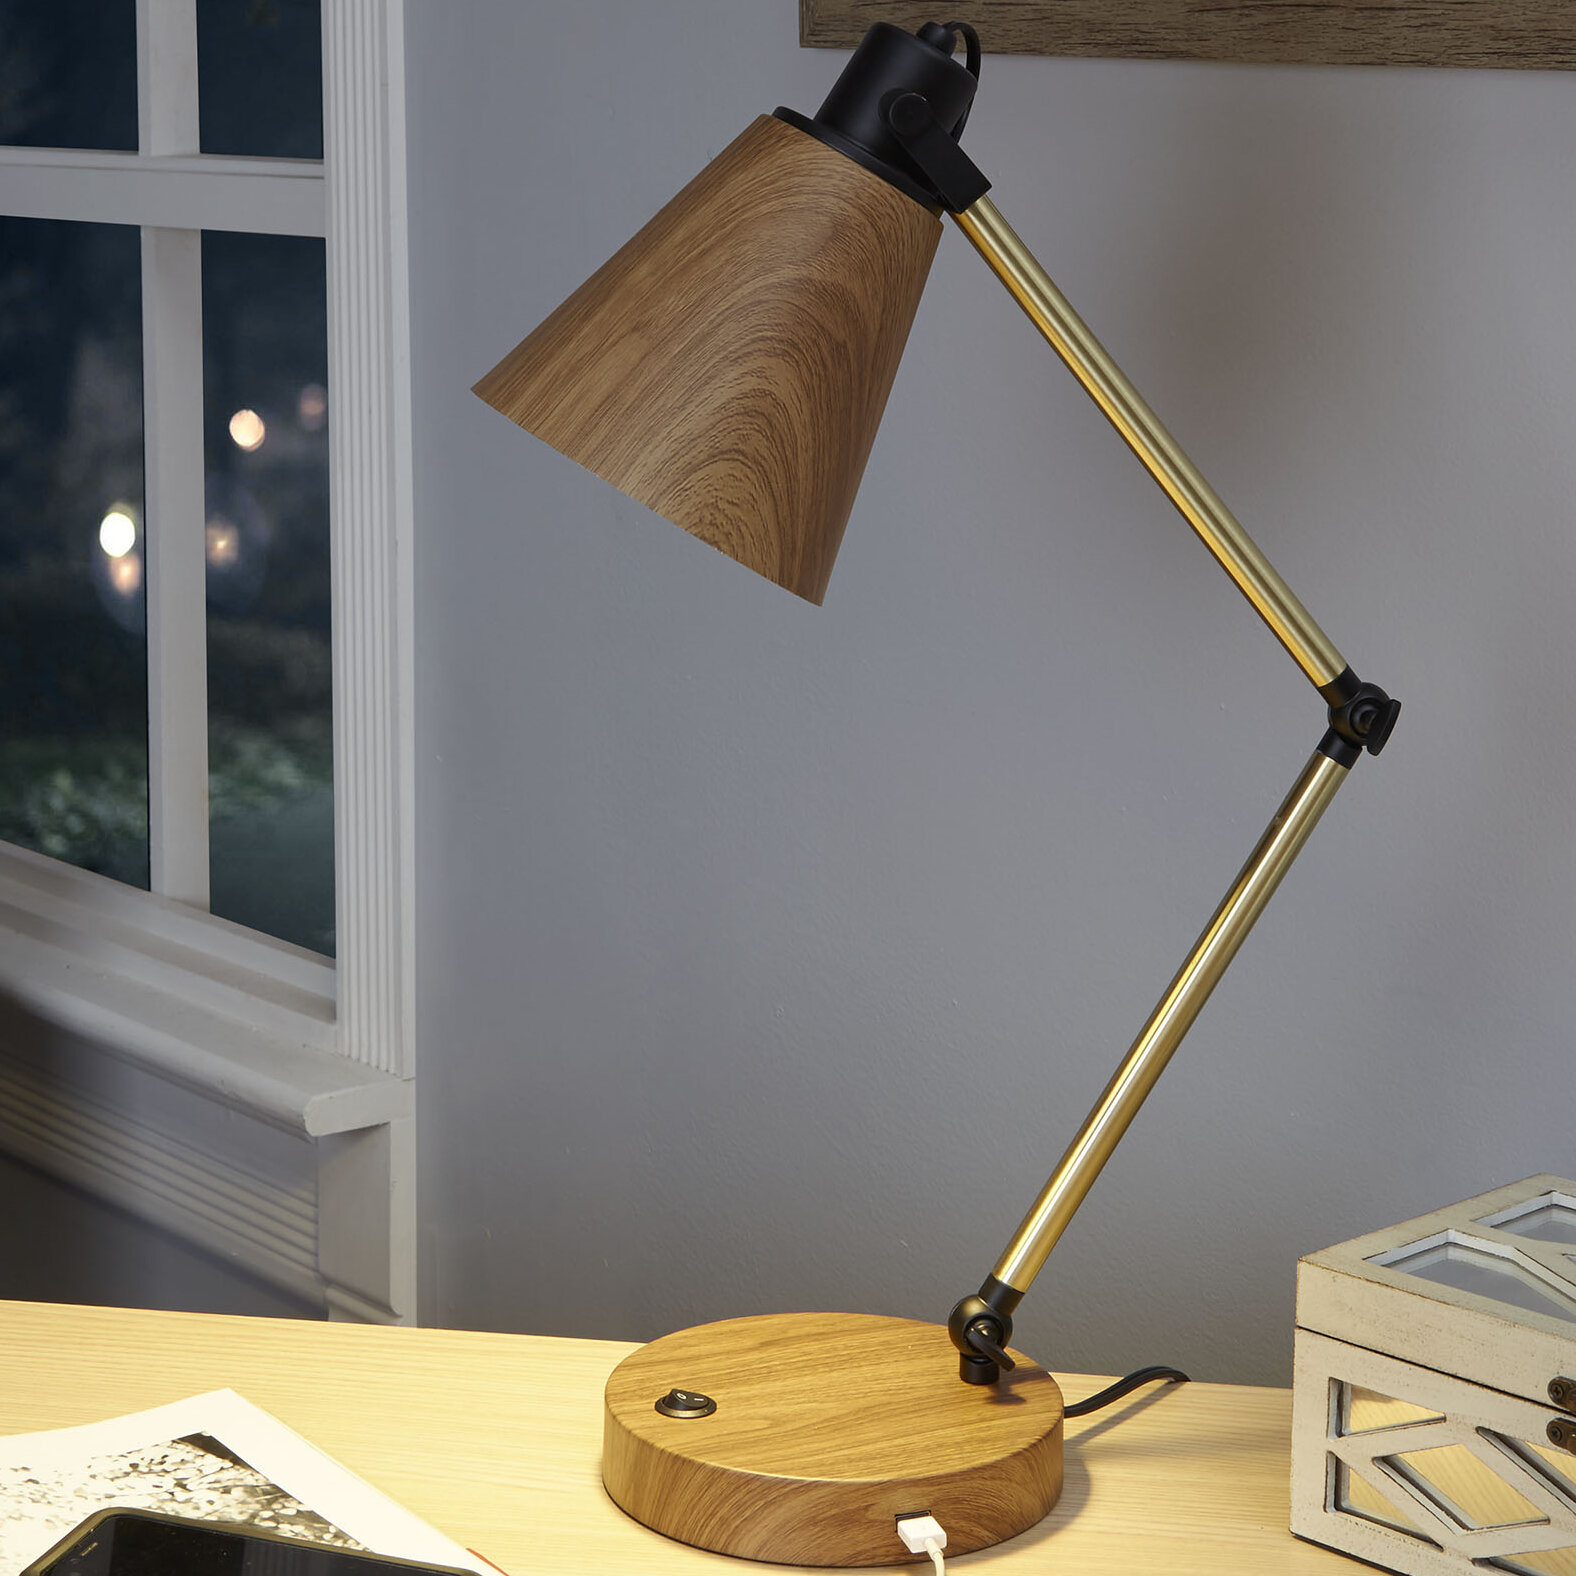 desk image intended nightstand table built lamps in popular usbrts and size for of large port with lamp clear outlets glass accent deskwer ports luxury full usb nicest tall charging uncategorized inspirations